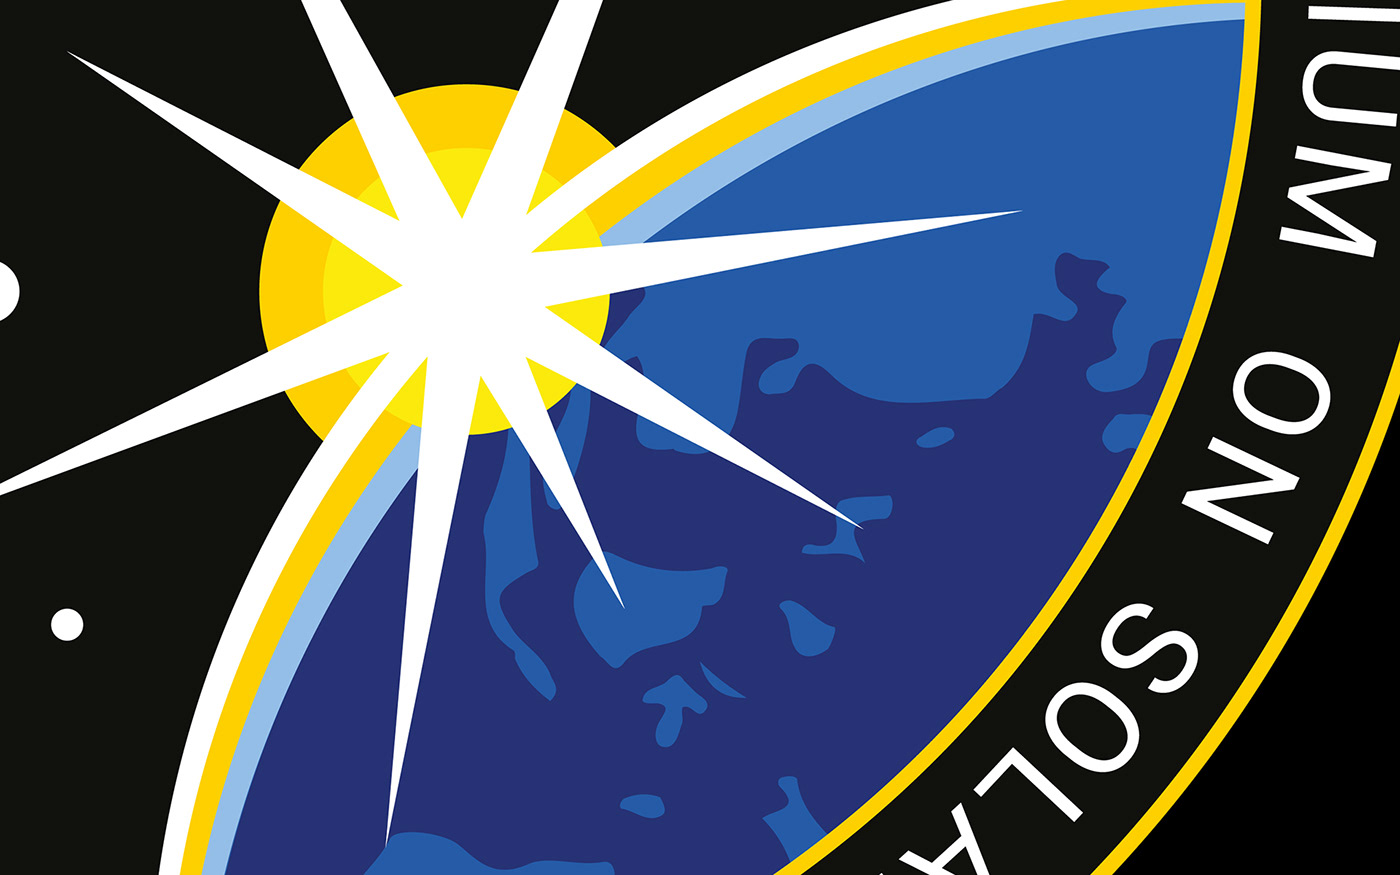 Mission Patch patch badge logo Space  solar Solar Sailing conference Event science